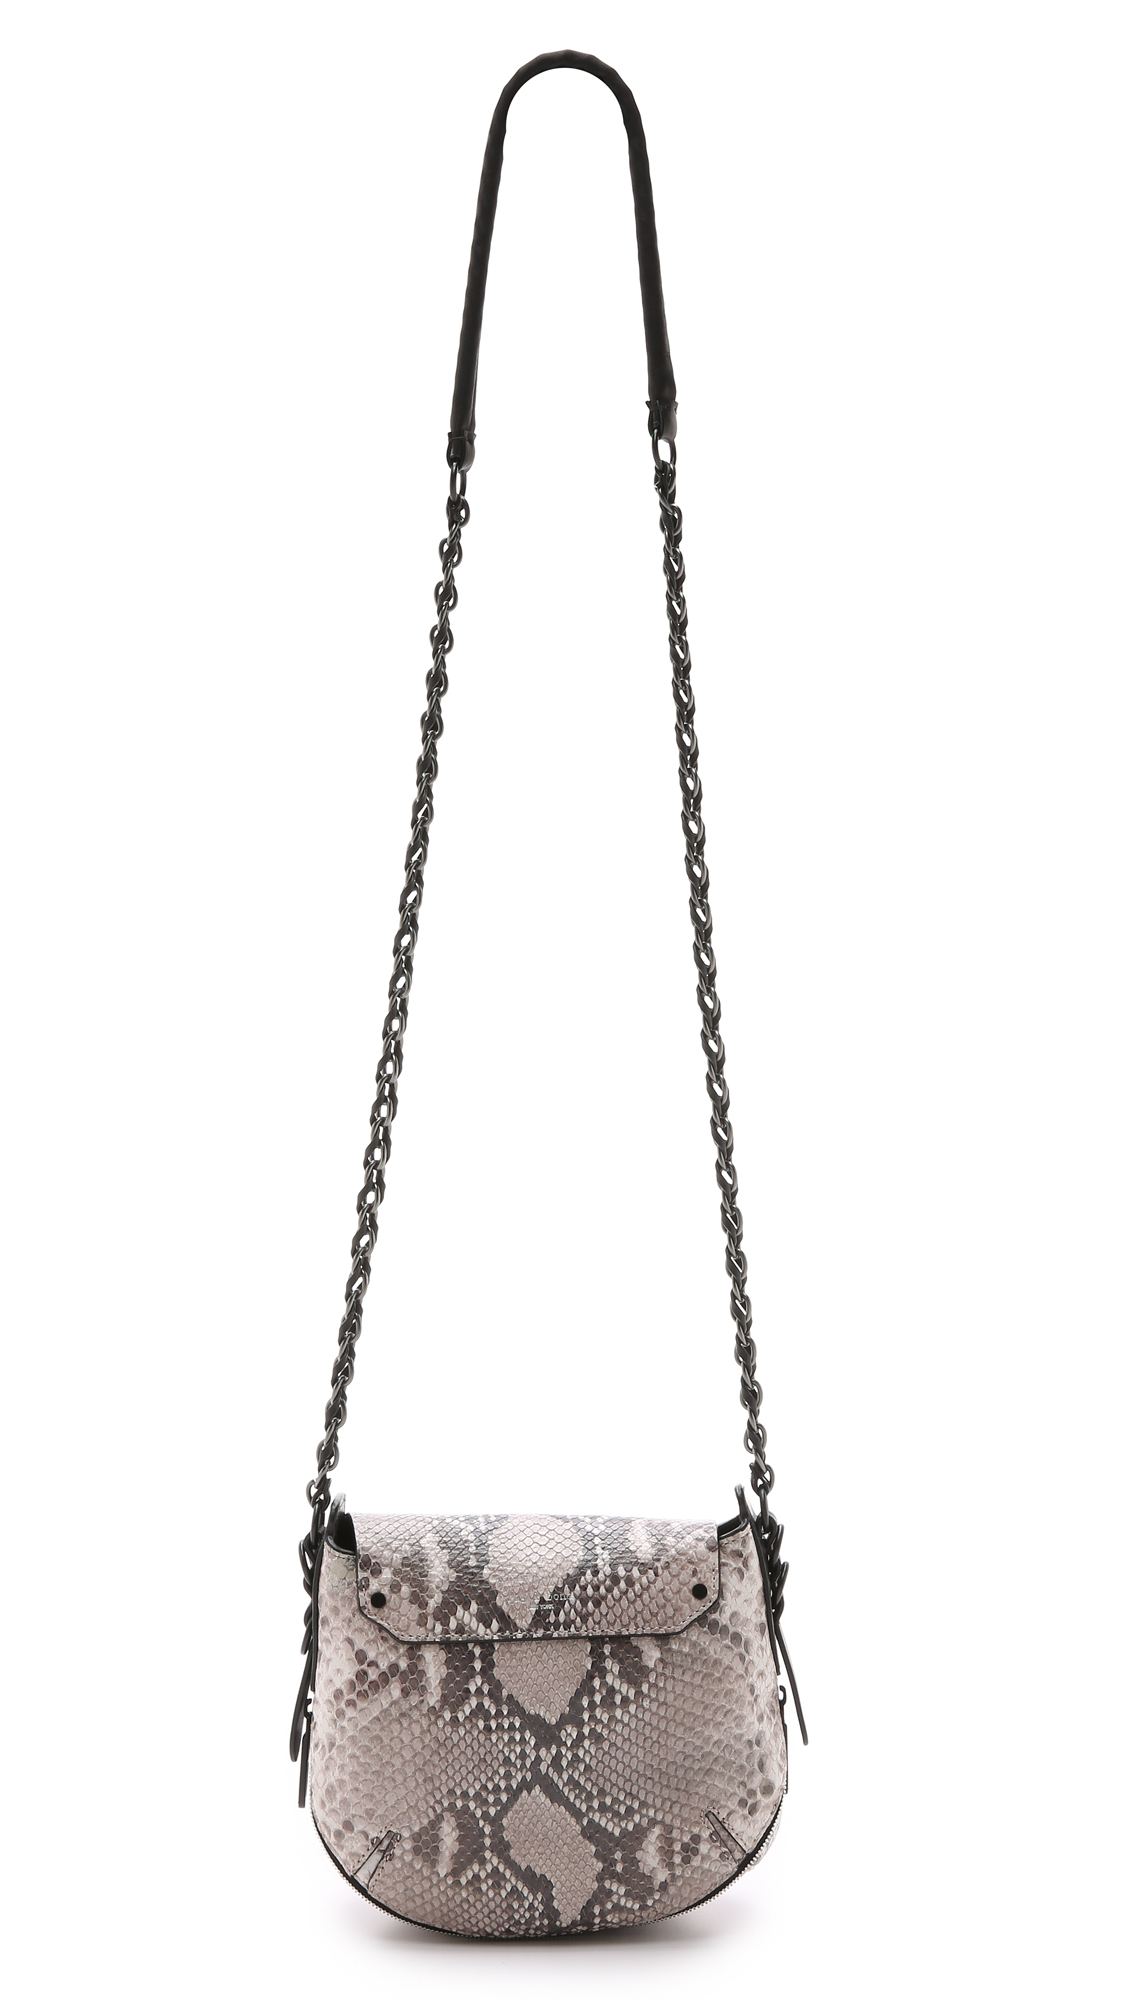 Rag & bone Printed Python Bradbury Mini Chain Hobo Bag - Fawn ...